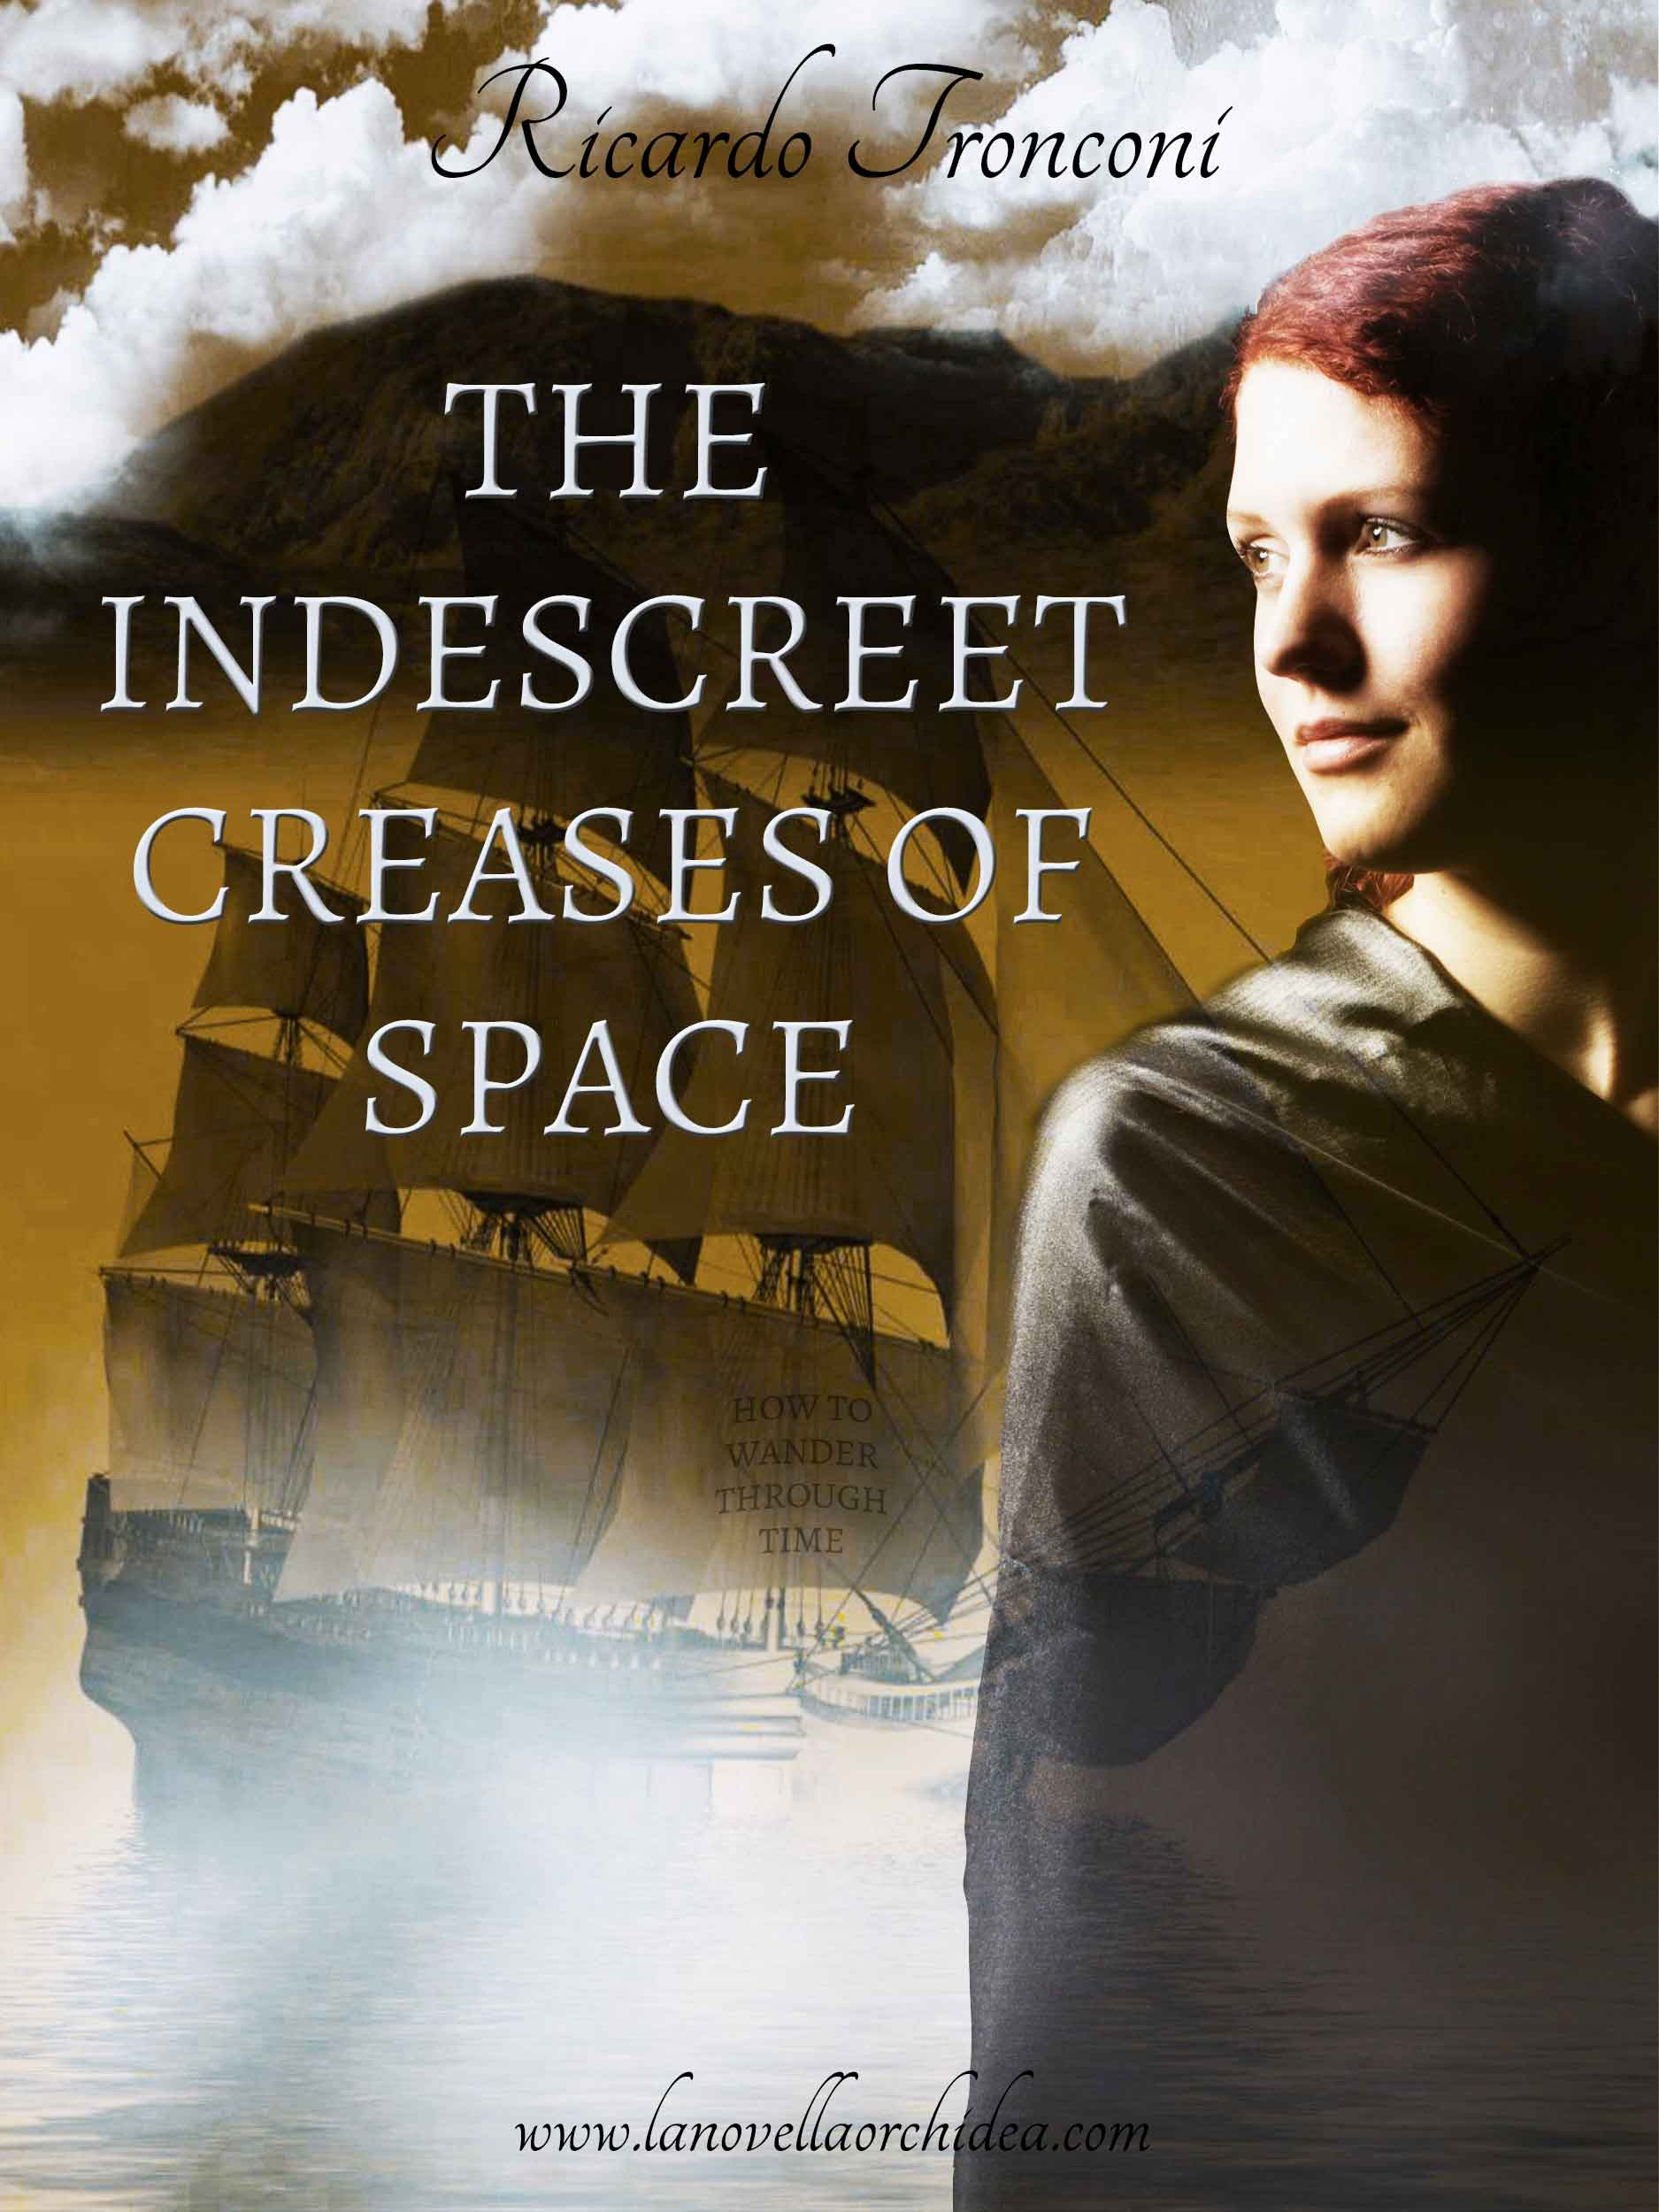 The indiscreet creases of space, or how to wonder through time